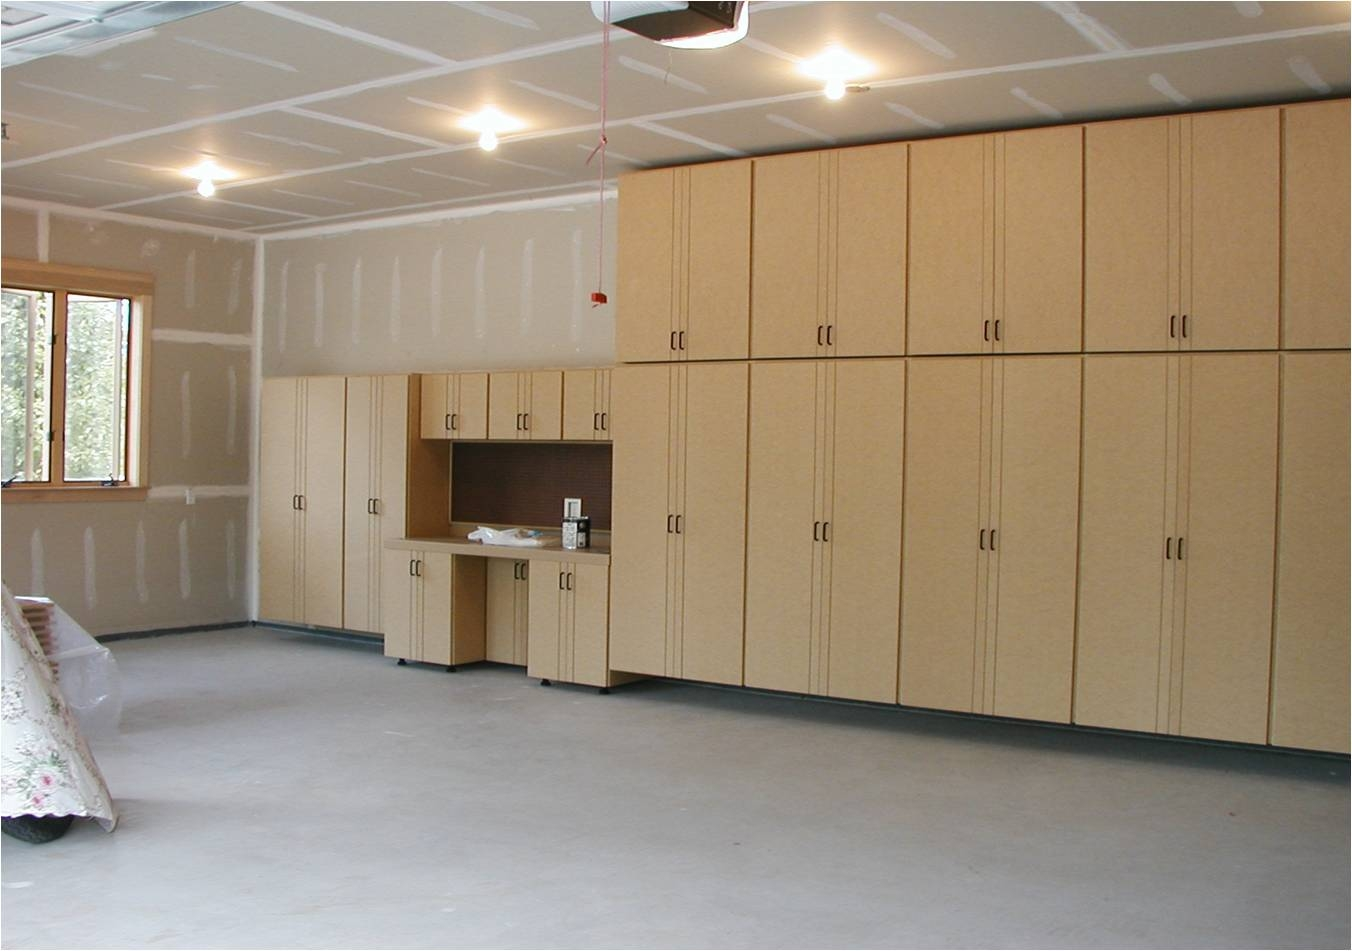 Wood Garage Storage Cabinets With Doors